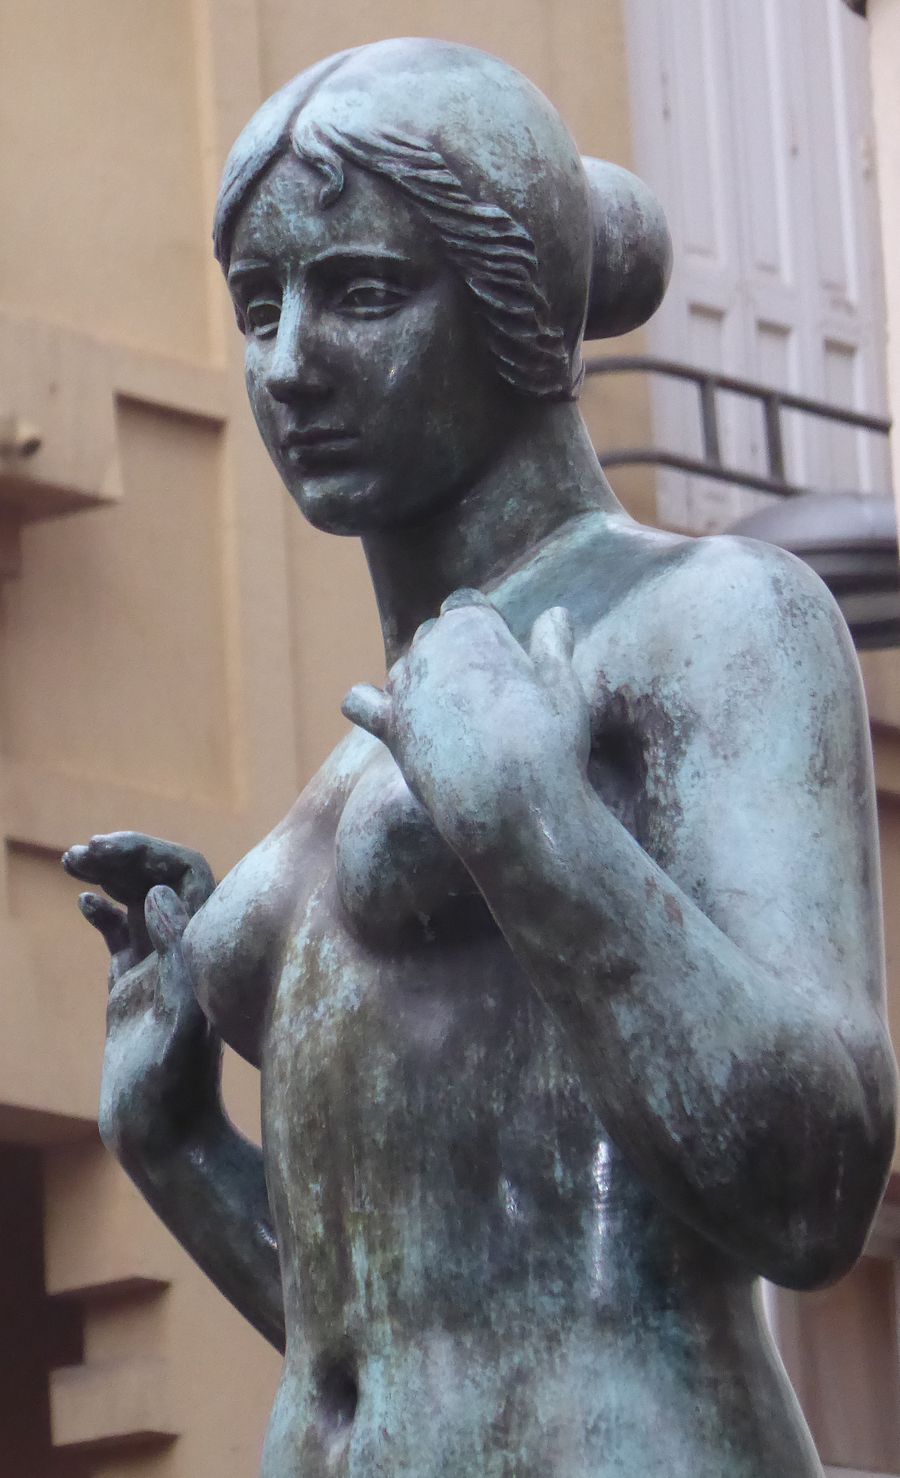 Sculpture by Maillol, Photo: H. Maurer, 2015